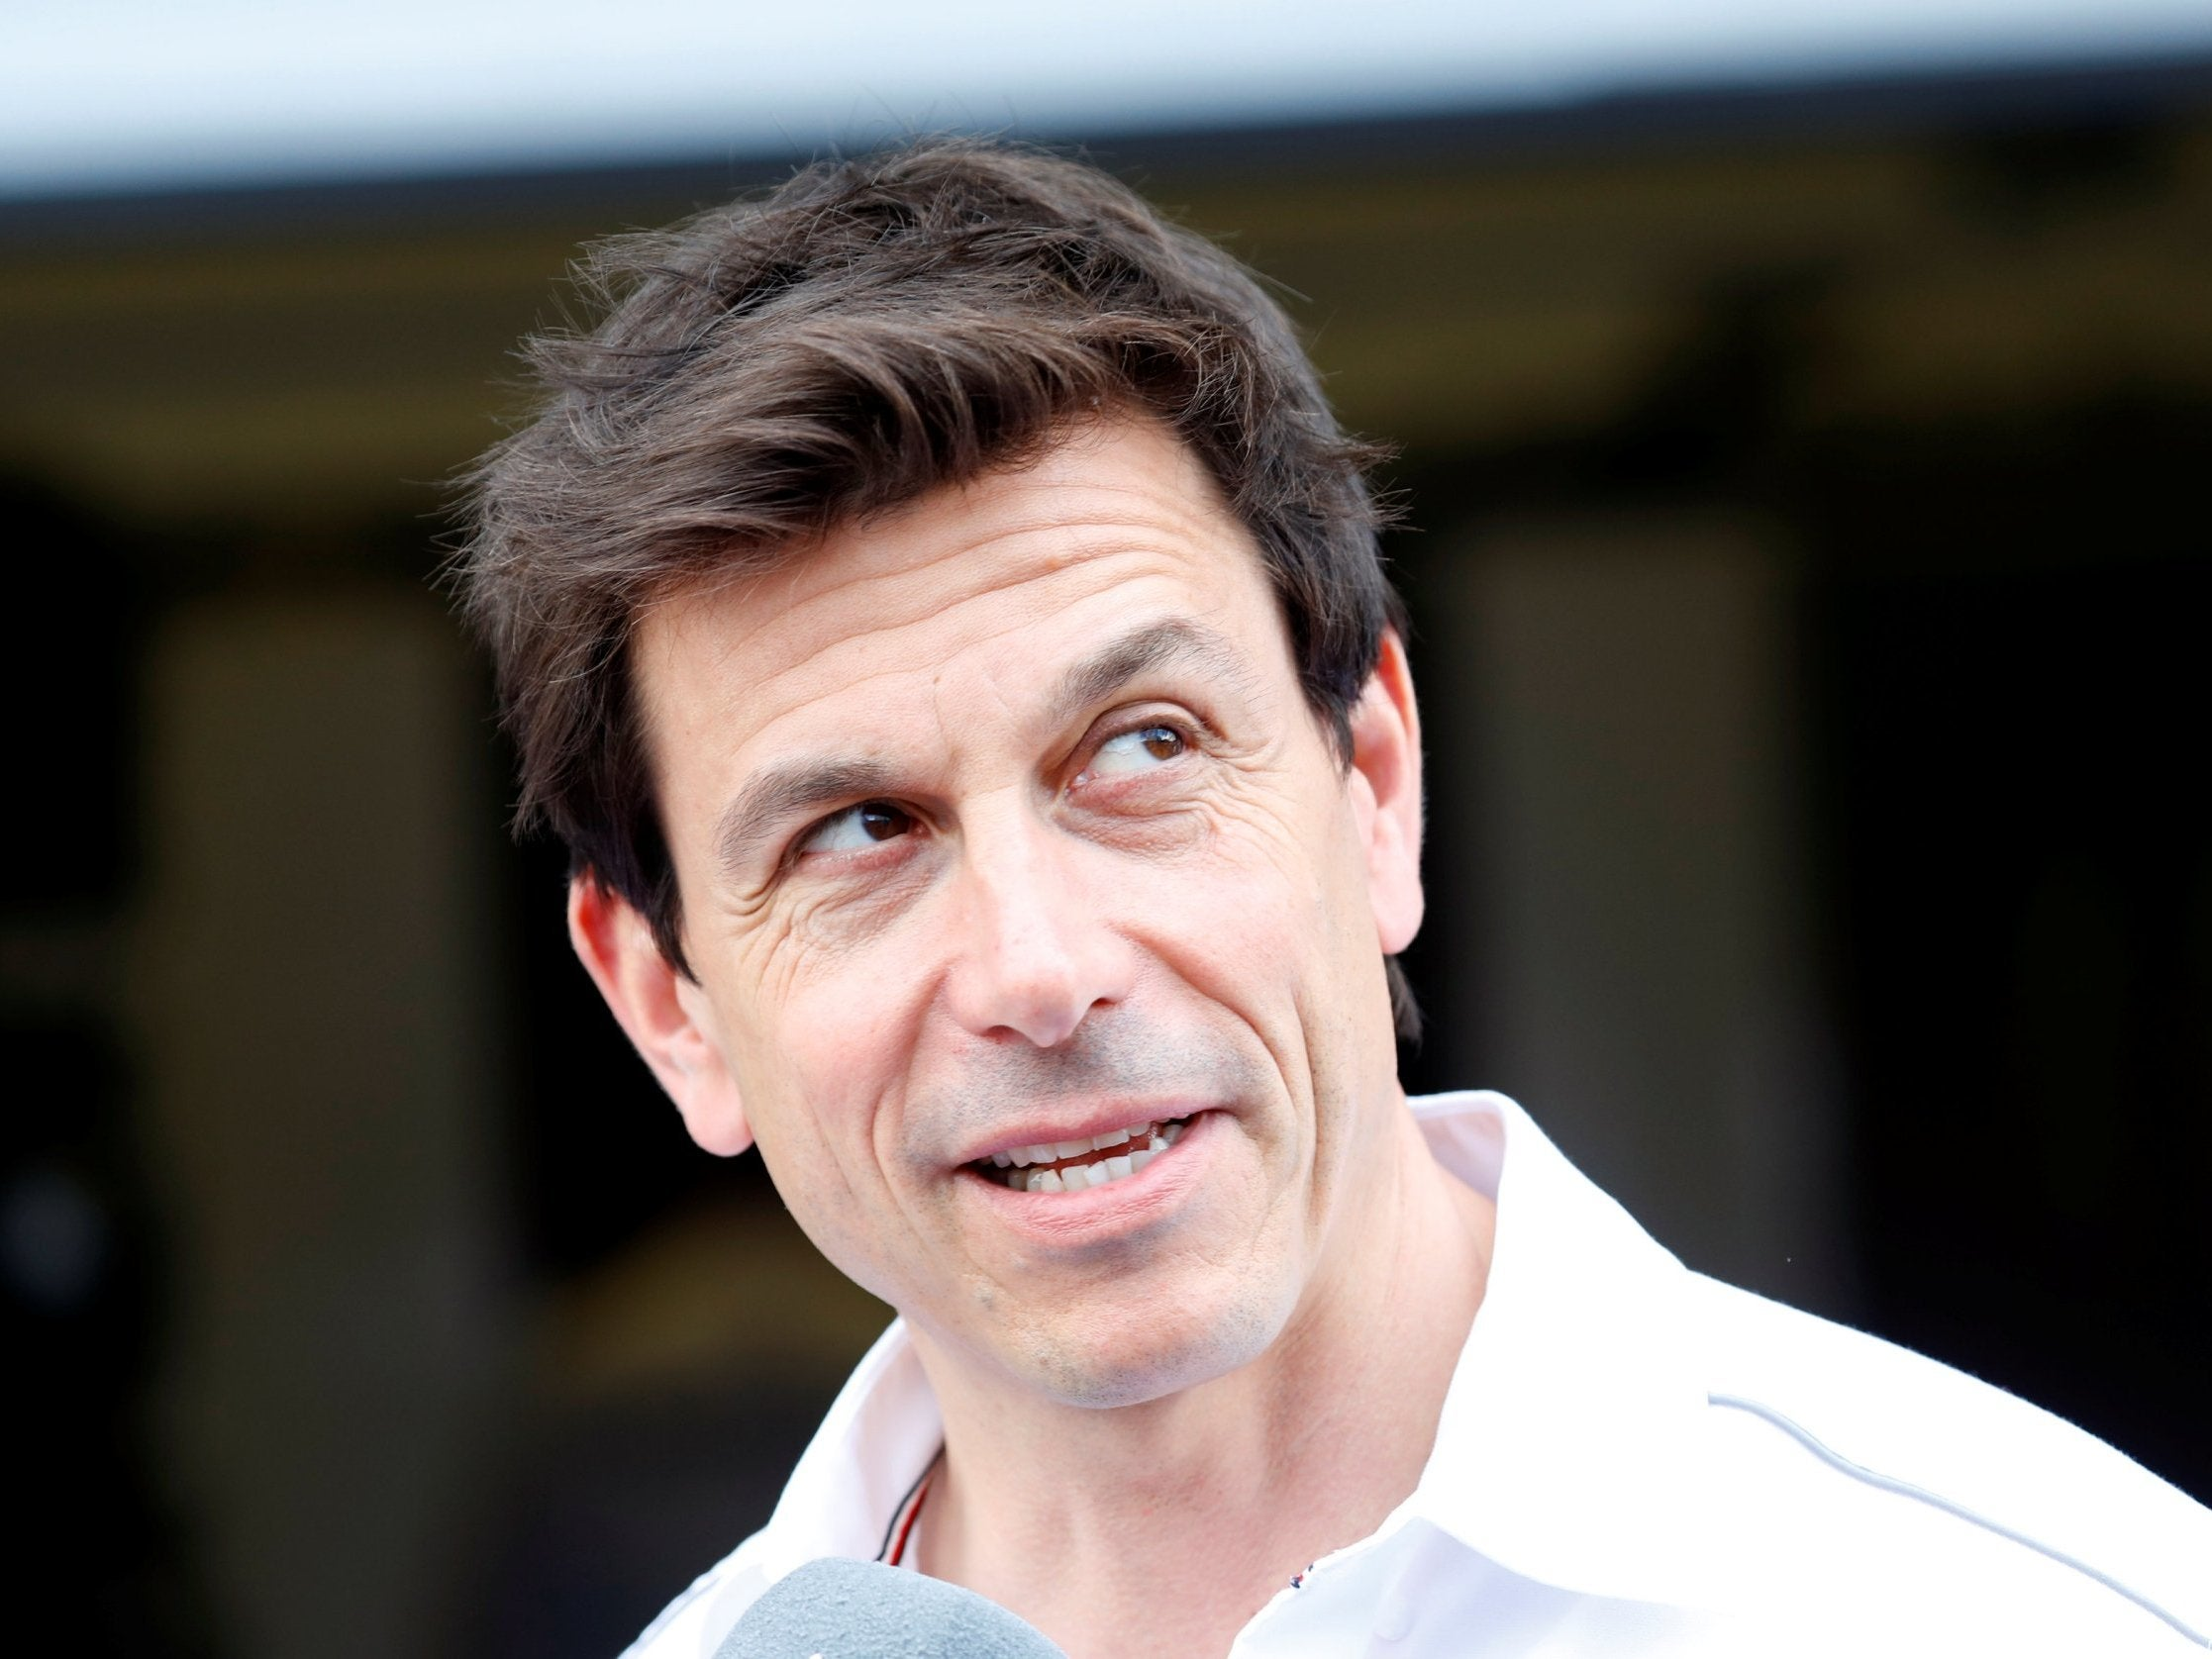 F1 news: Mercedes blocked reverse grid 'gimmick', says team boss Toto Wolff